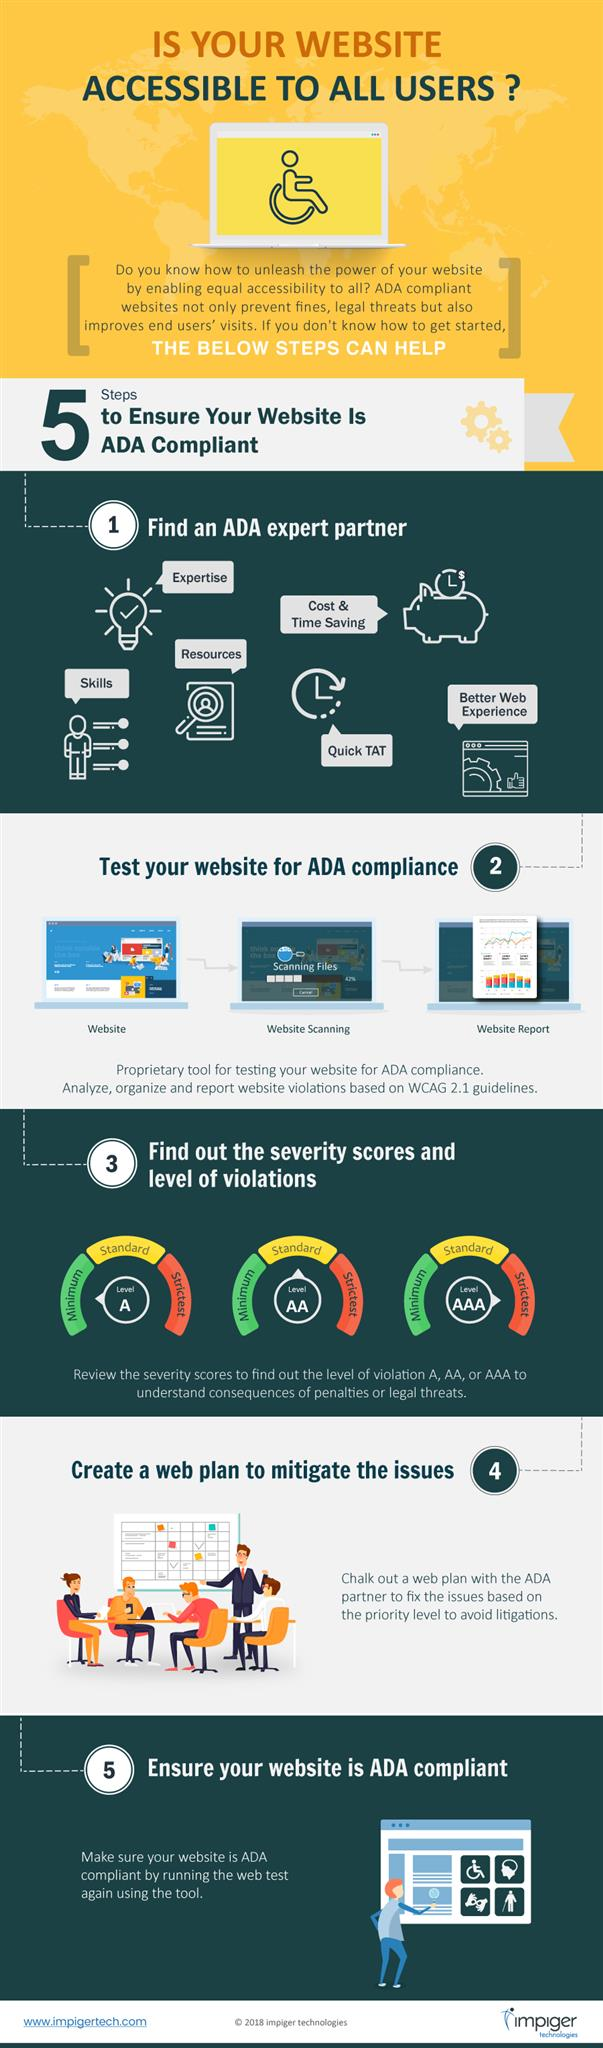 Making Your Website ADA Compliant - Infographics